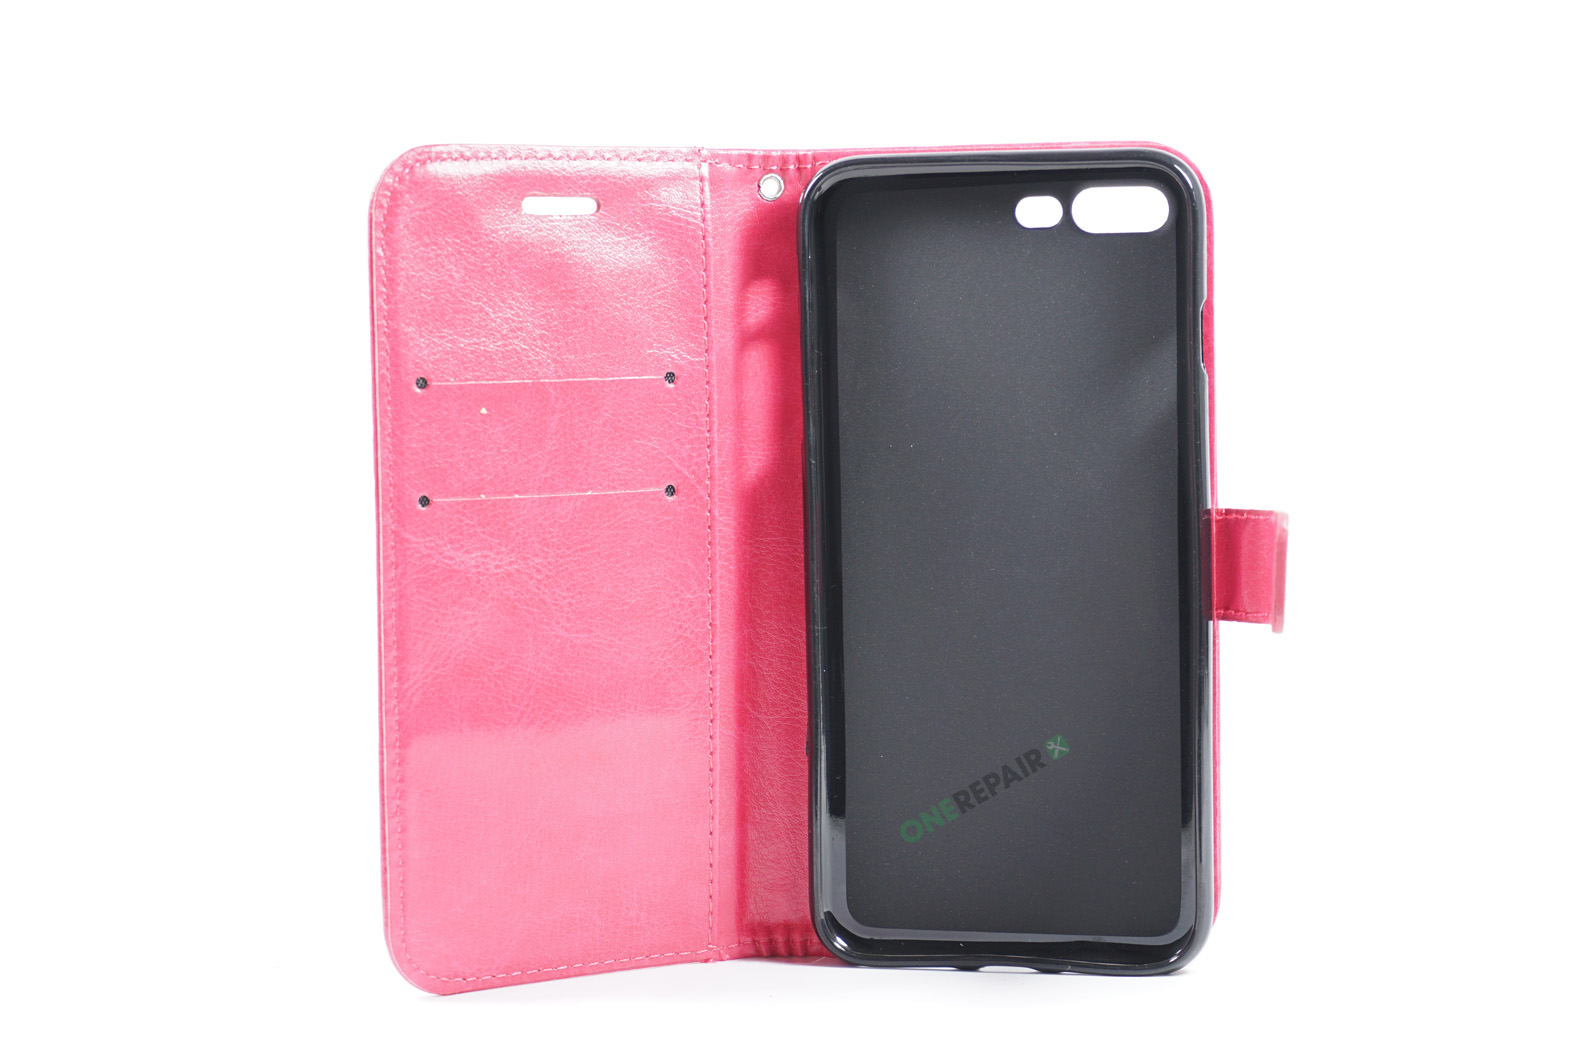 351830_iPhone_7+_8+_Flipcover_Classic_Cover_Pink_Lyseroed_OneRepair_WM_00002